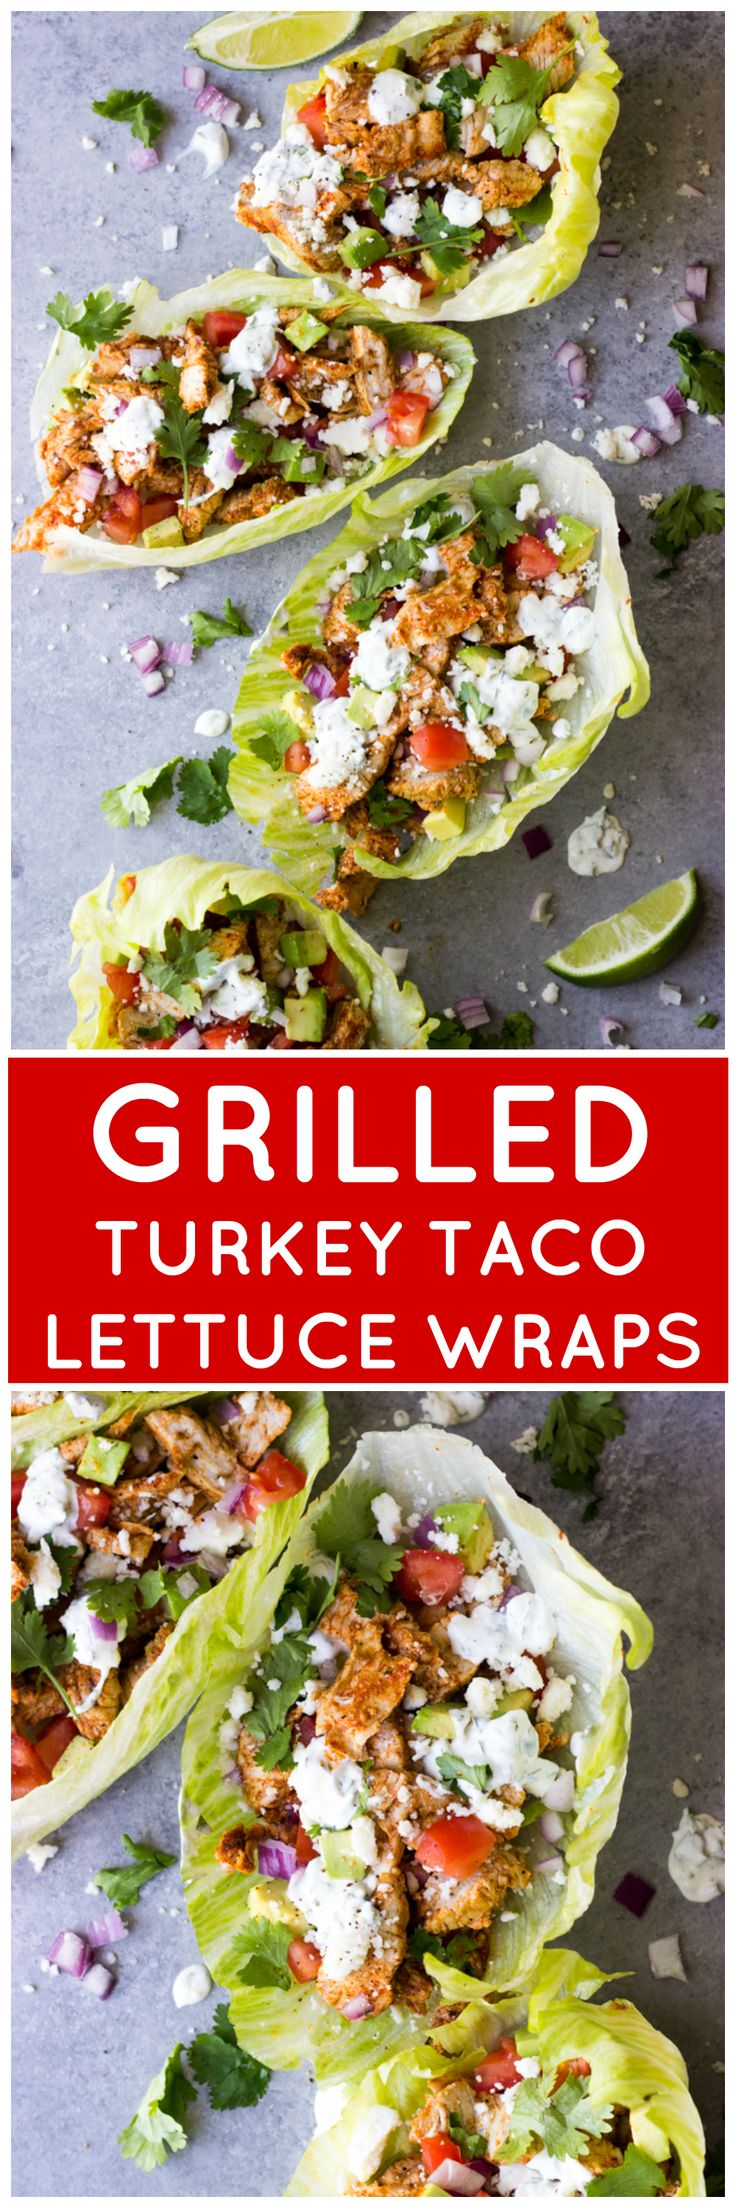 Grilled Turkey Taco Lettuce Wraps - low carb turkey lettuce wraps that are not only healthy but super easy to make | littlebroken.com @littlebroken #700Reasons